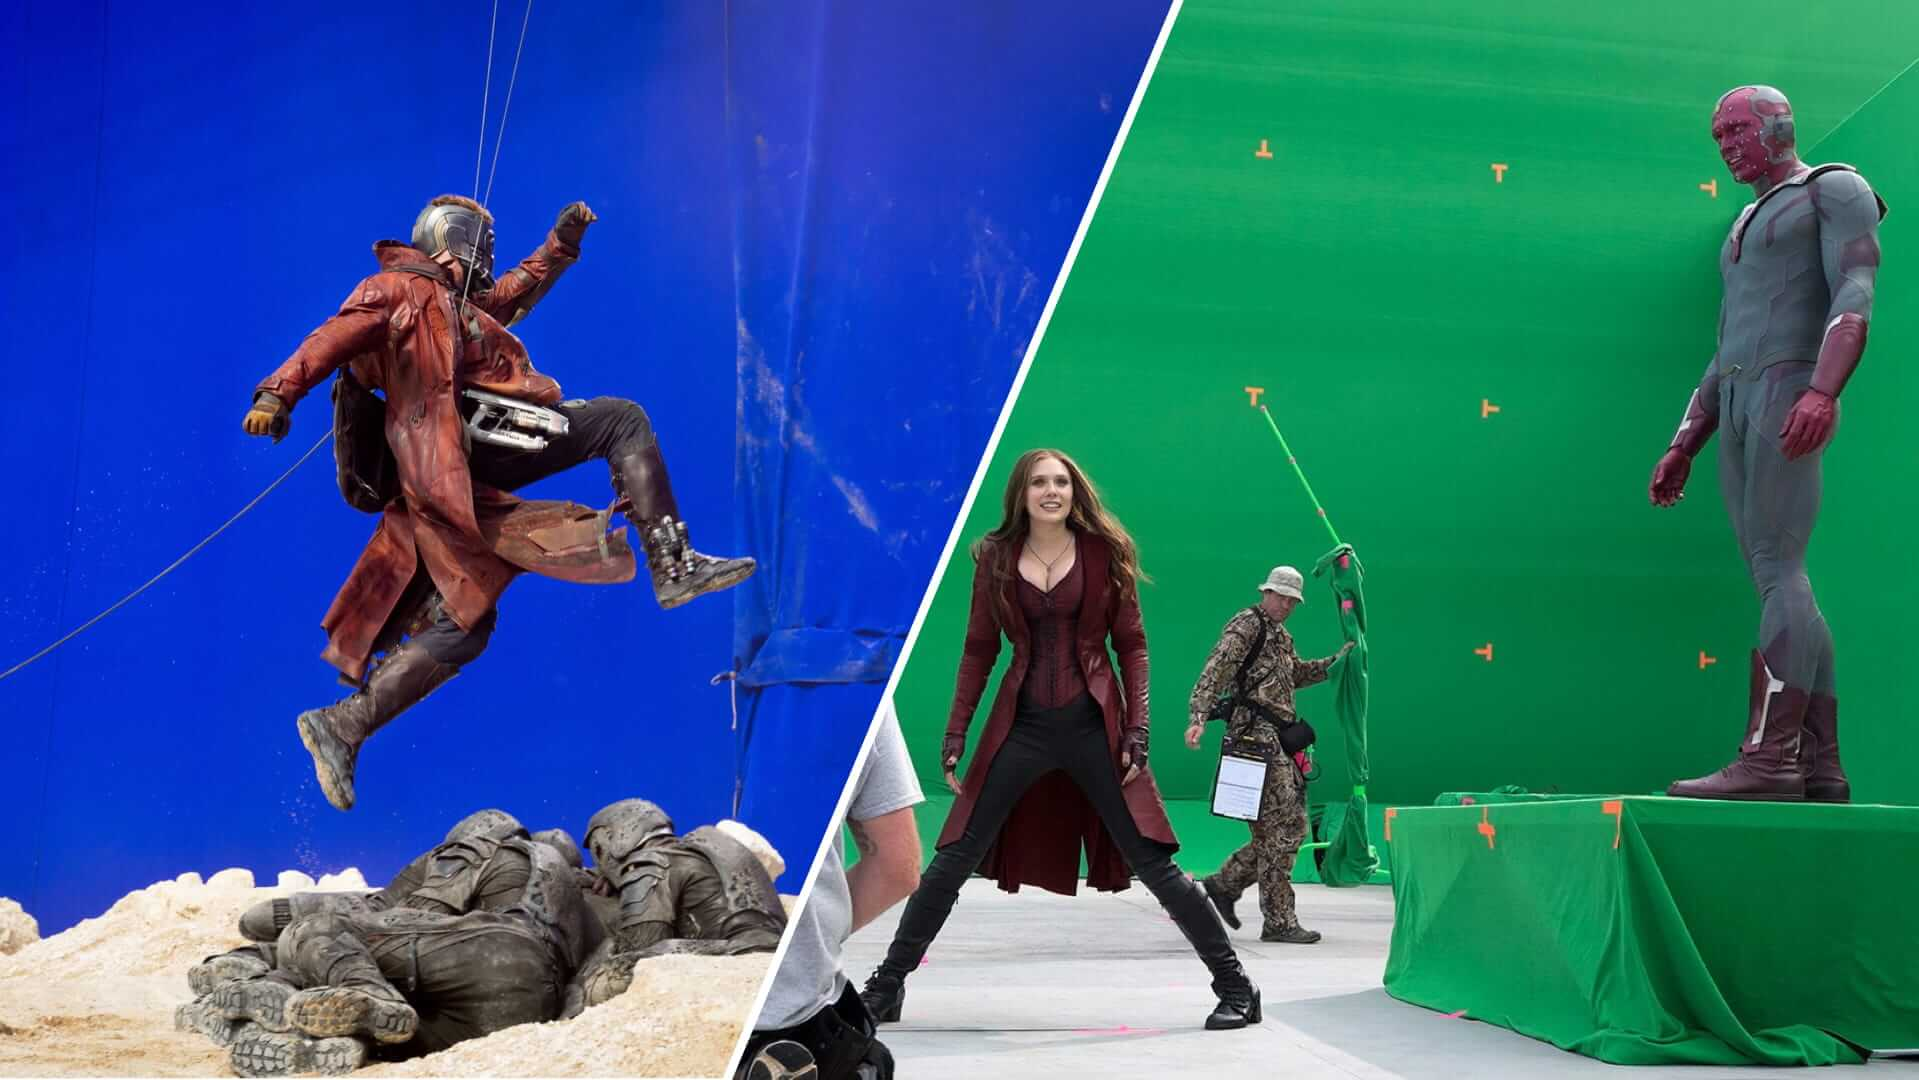 Blue Screen vs Green Screen Differences Explained - Featured